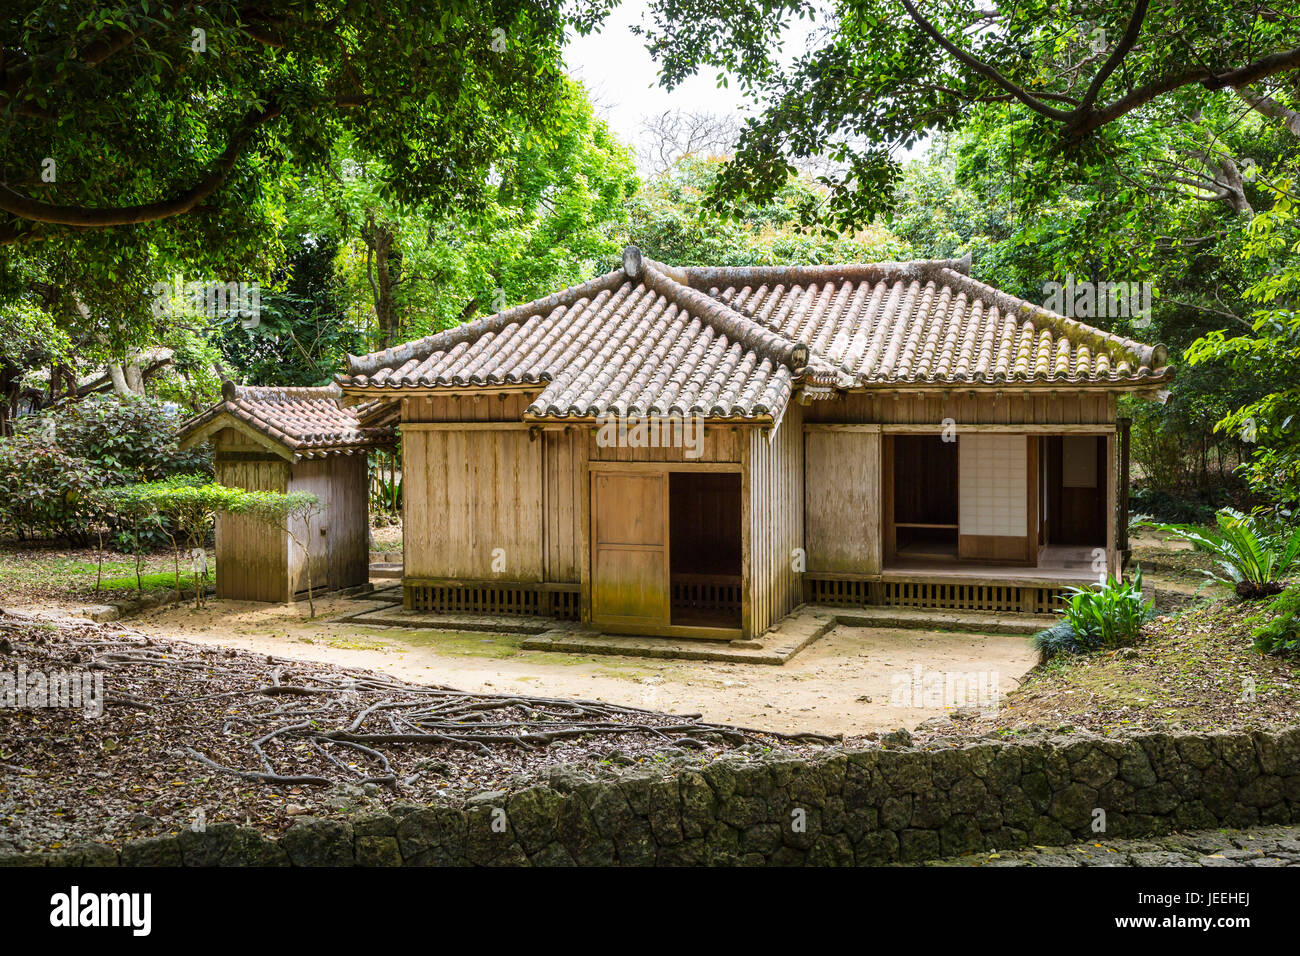 The gardens of Shikinaen, a former Royal residence are located on a small hill to the south of Shuri Castle in Naha, - Stock Image